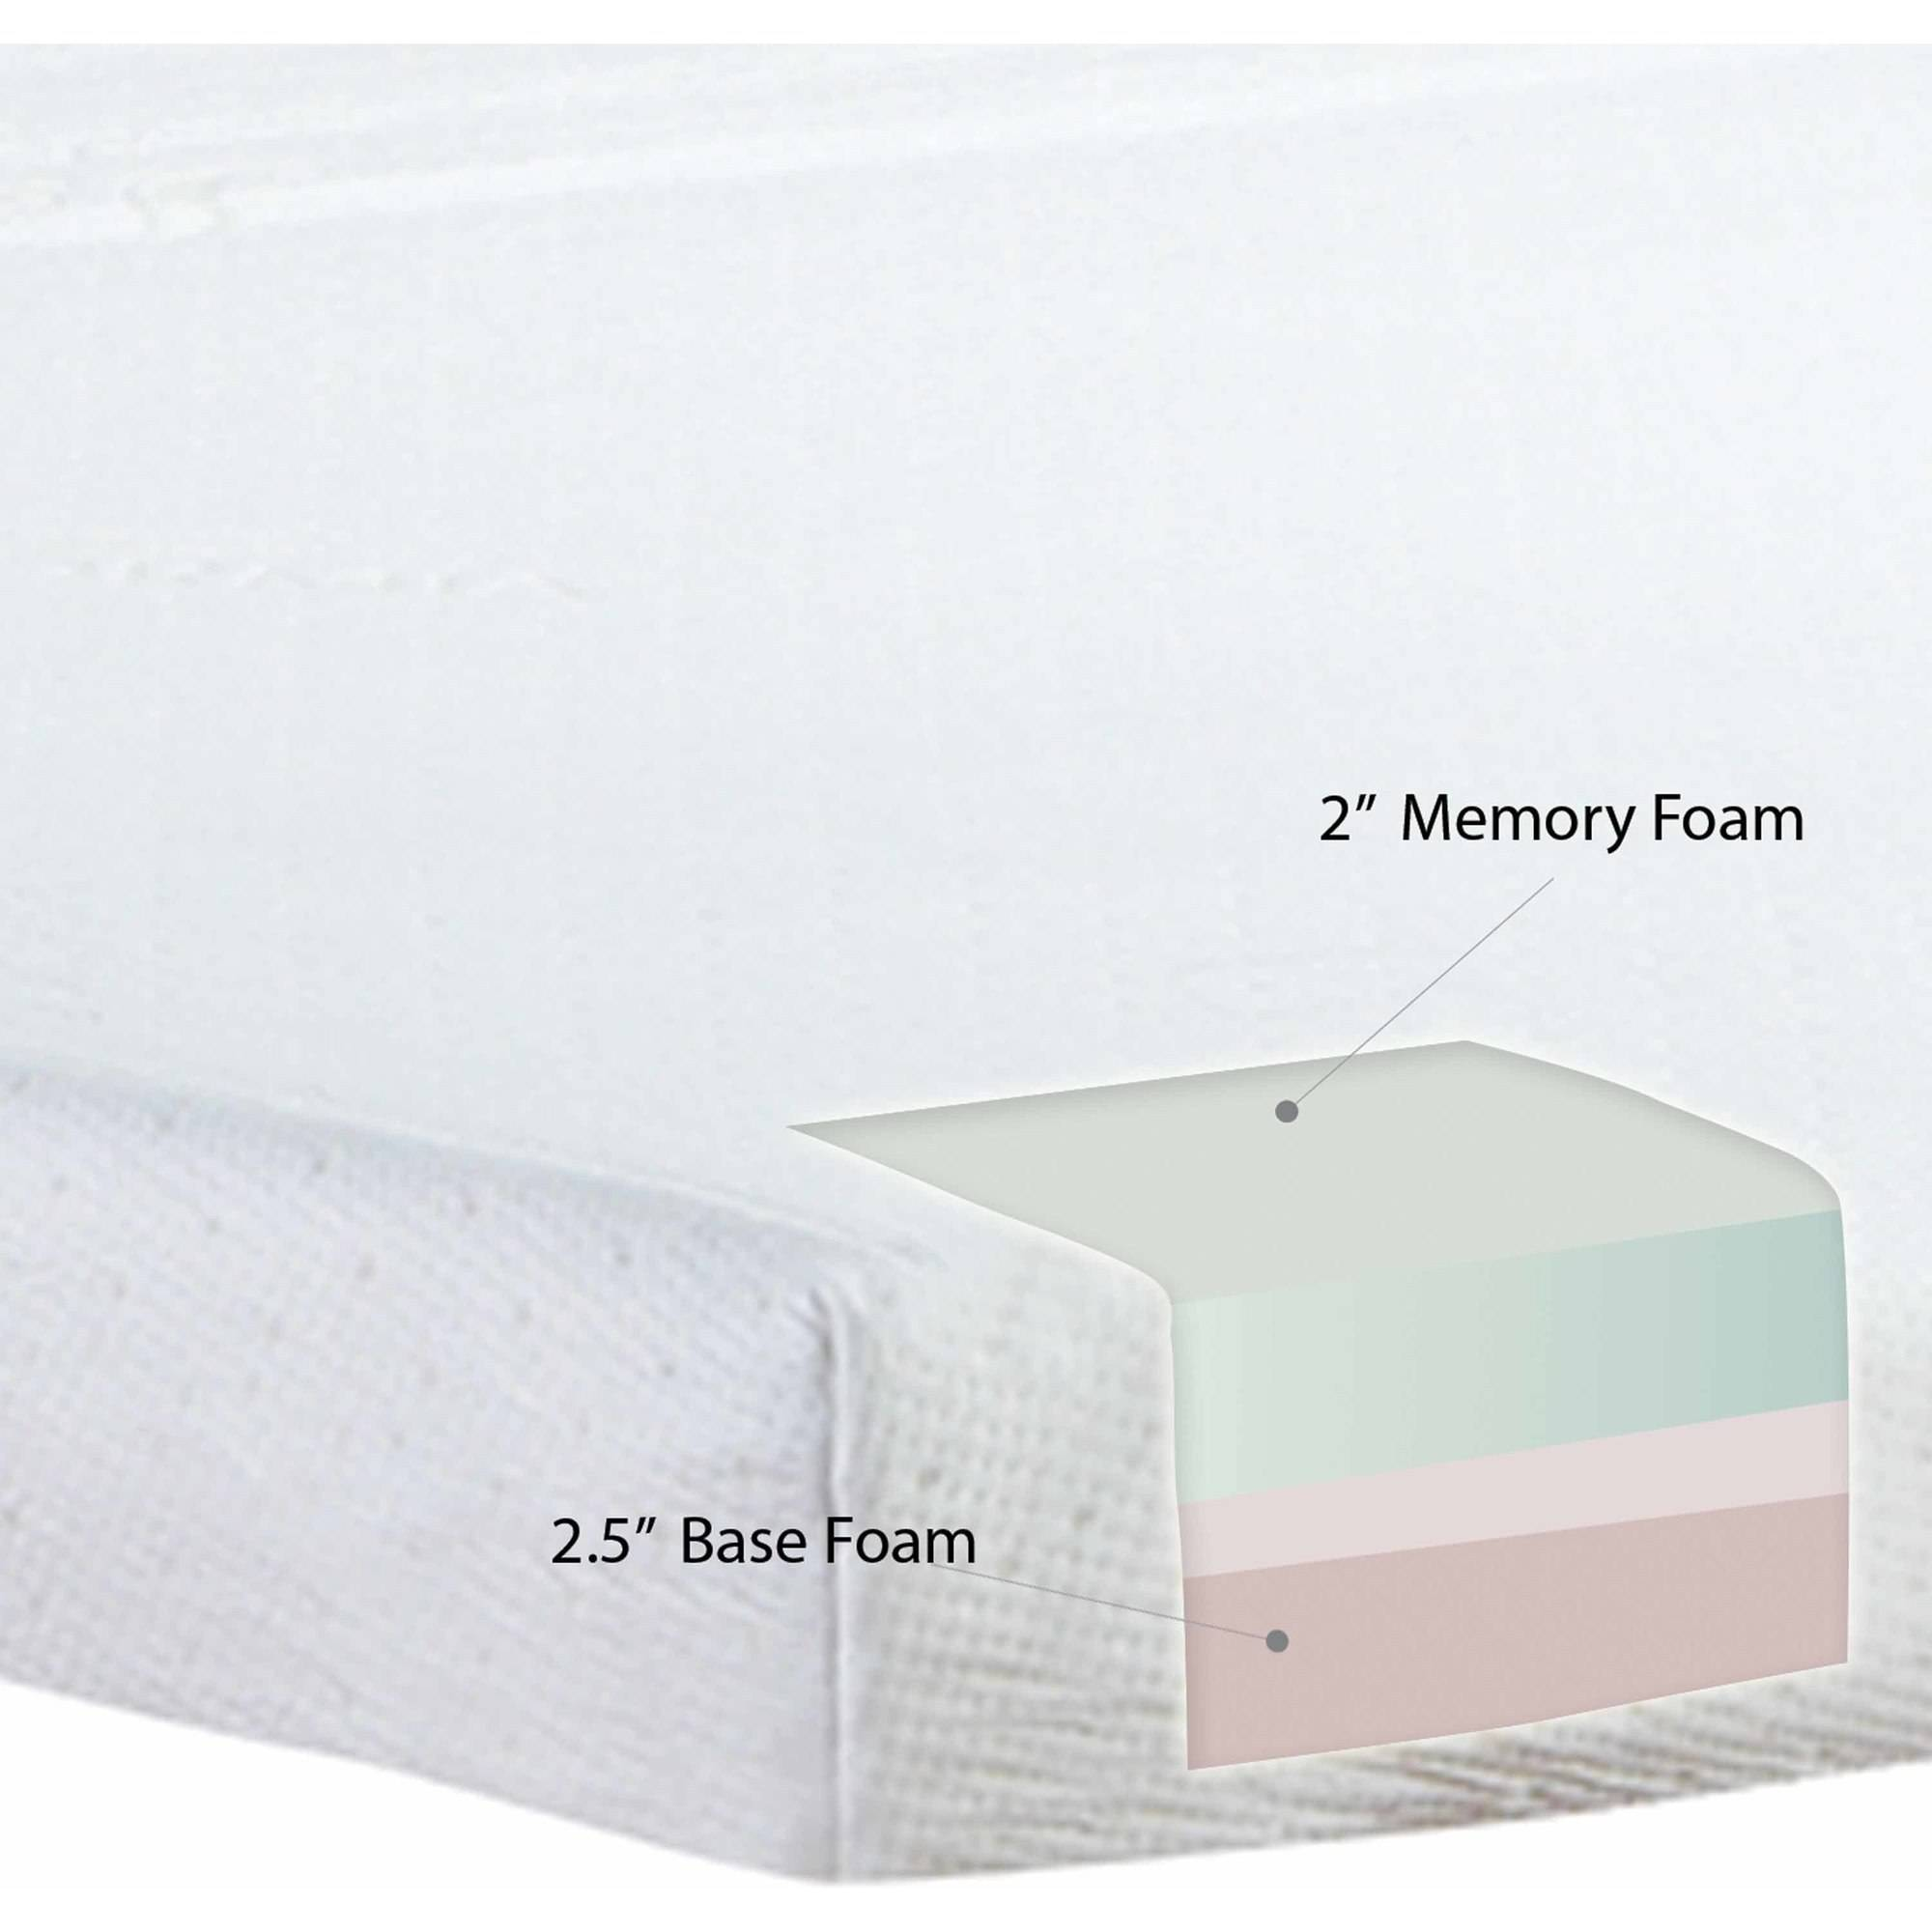 memory foam mattress for sleeper sofa